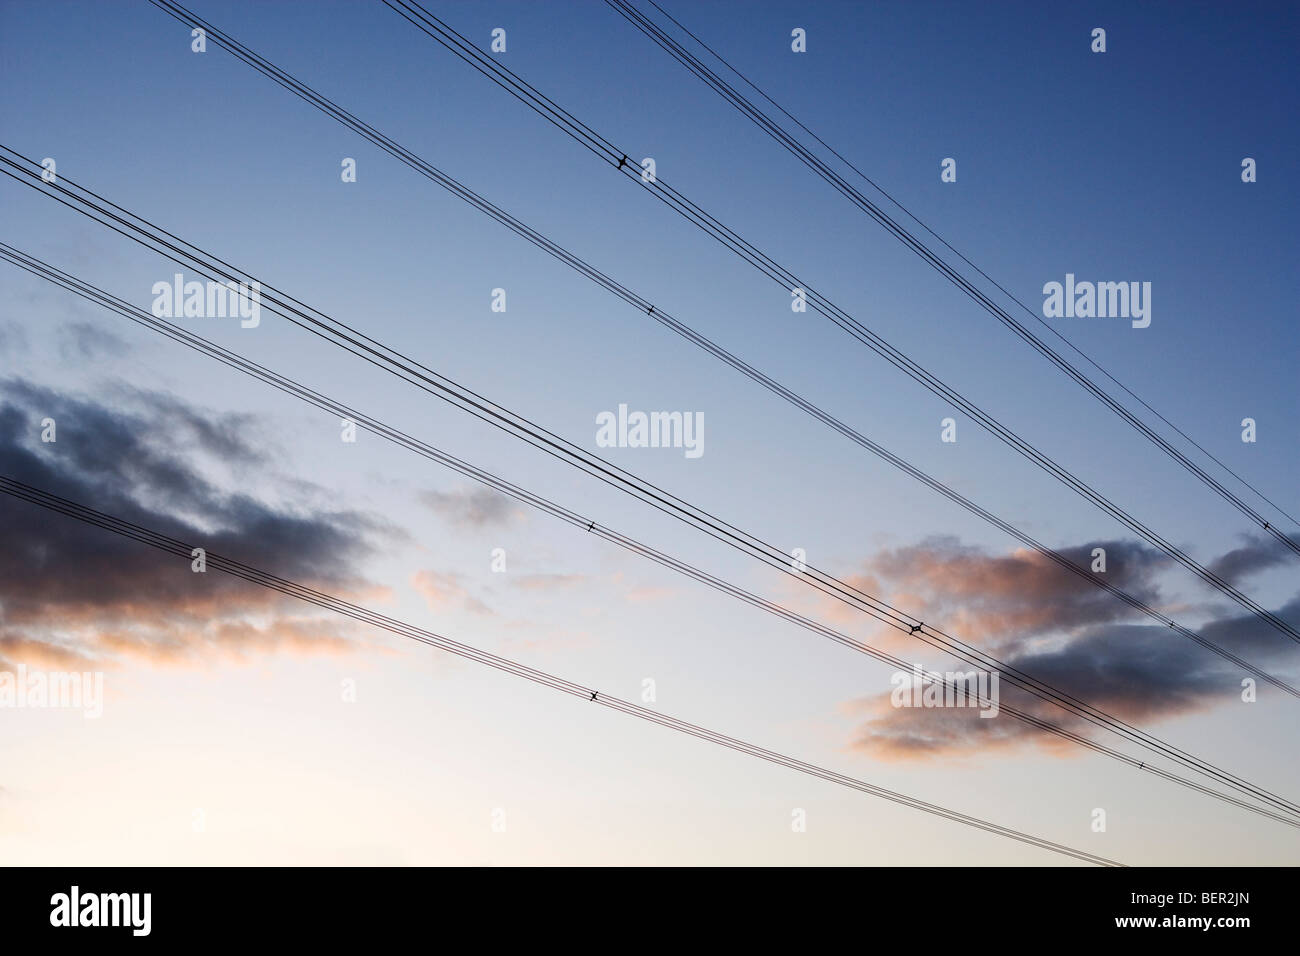 Electricity power cables - Stock Image